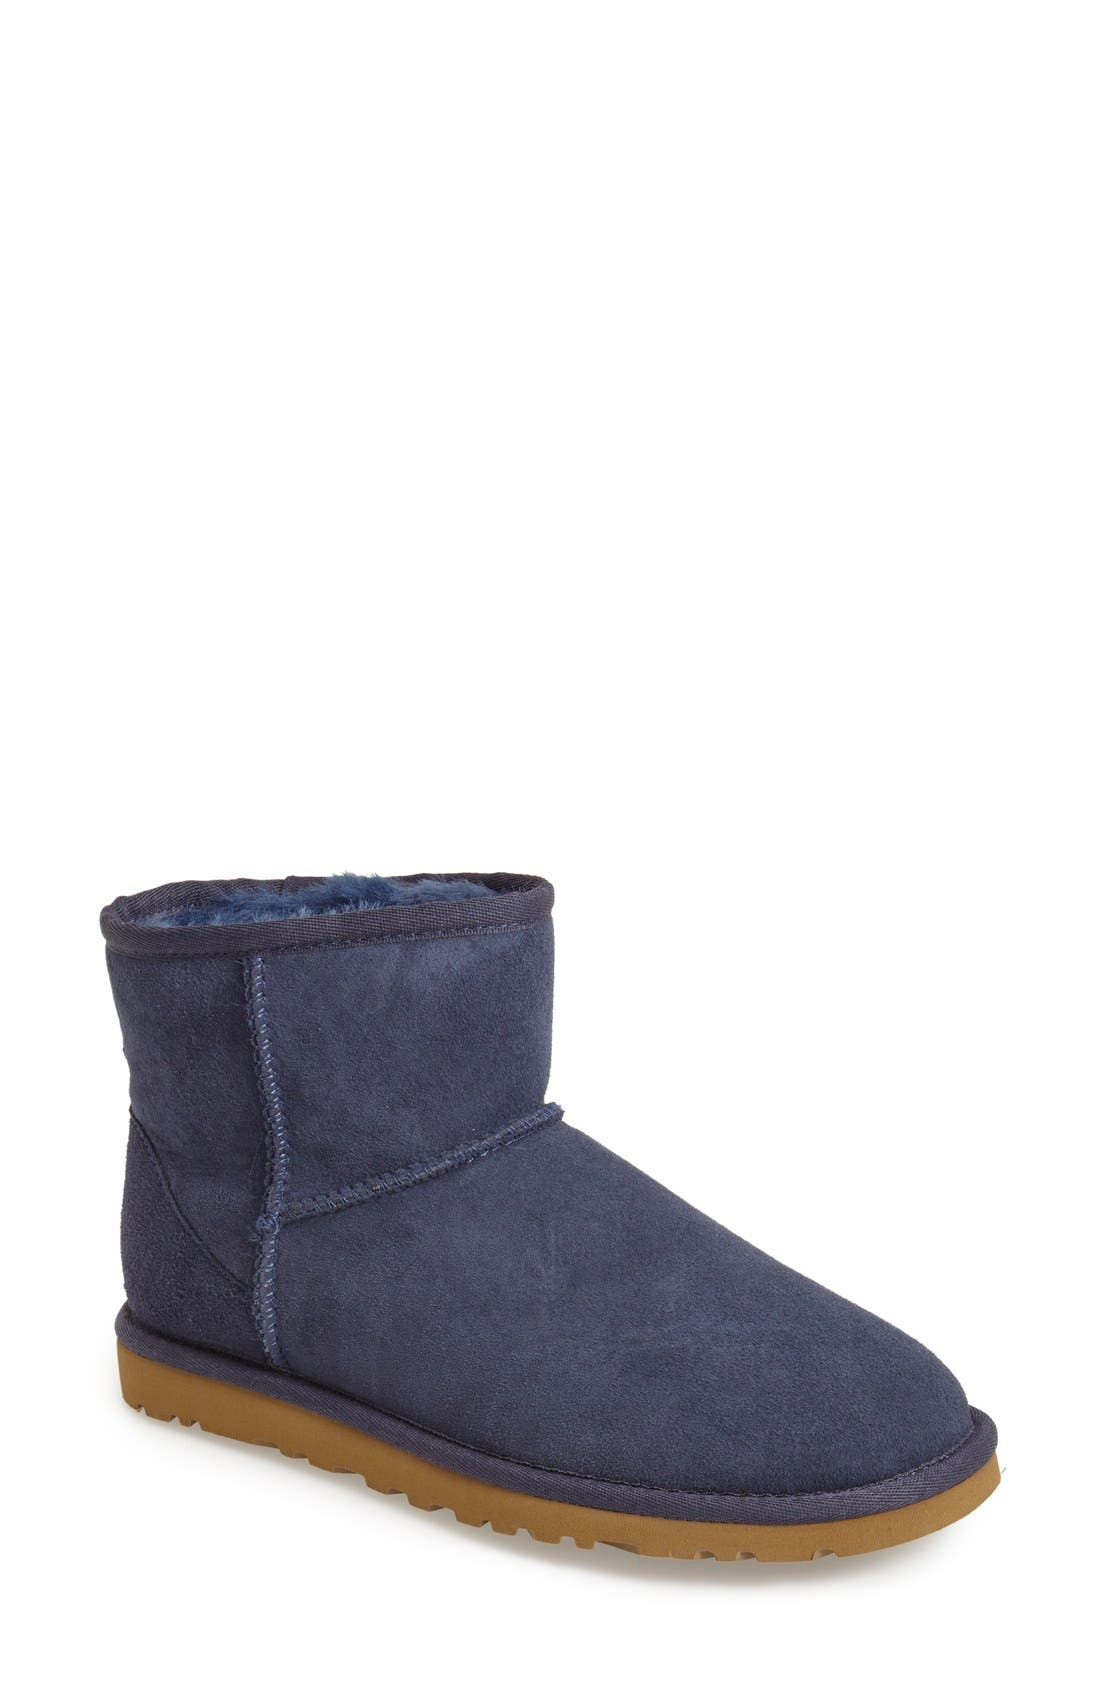 Alternate Image 1 Selected - UGG® Classic Mini Boot (Women)